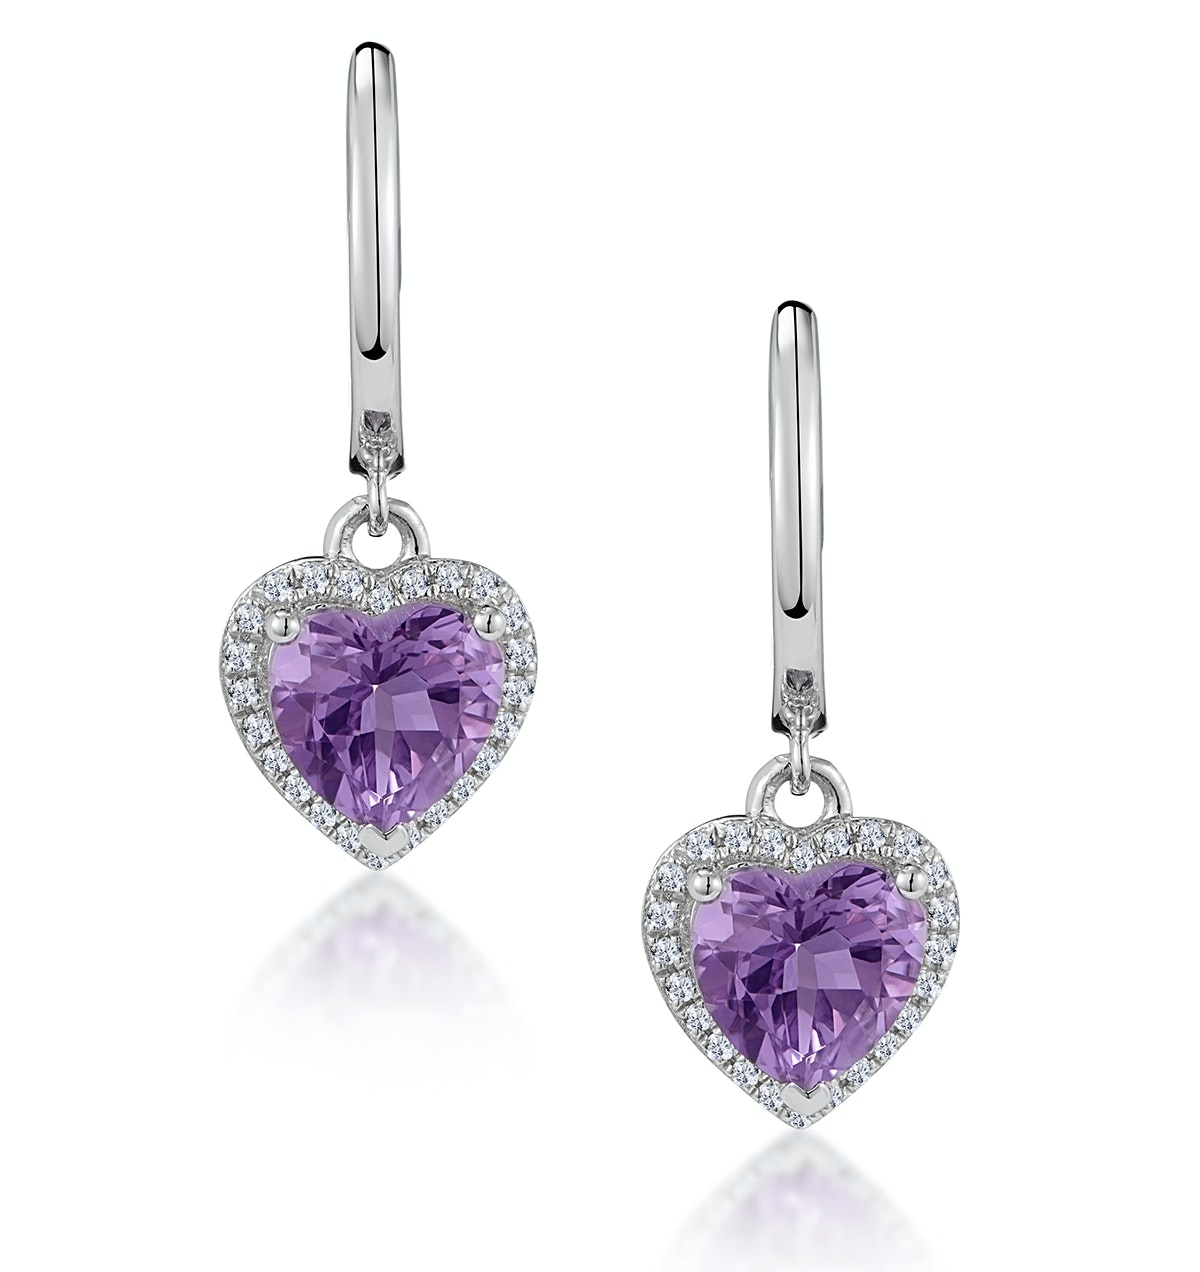 Stellato Amethyst and Diamond Pave Heart Earrings in 9K White Gold